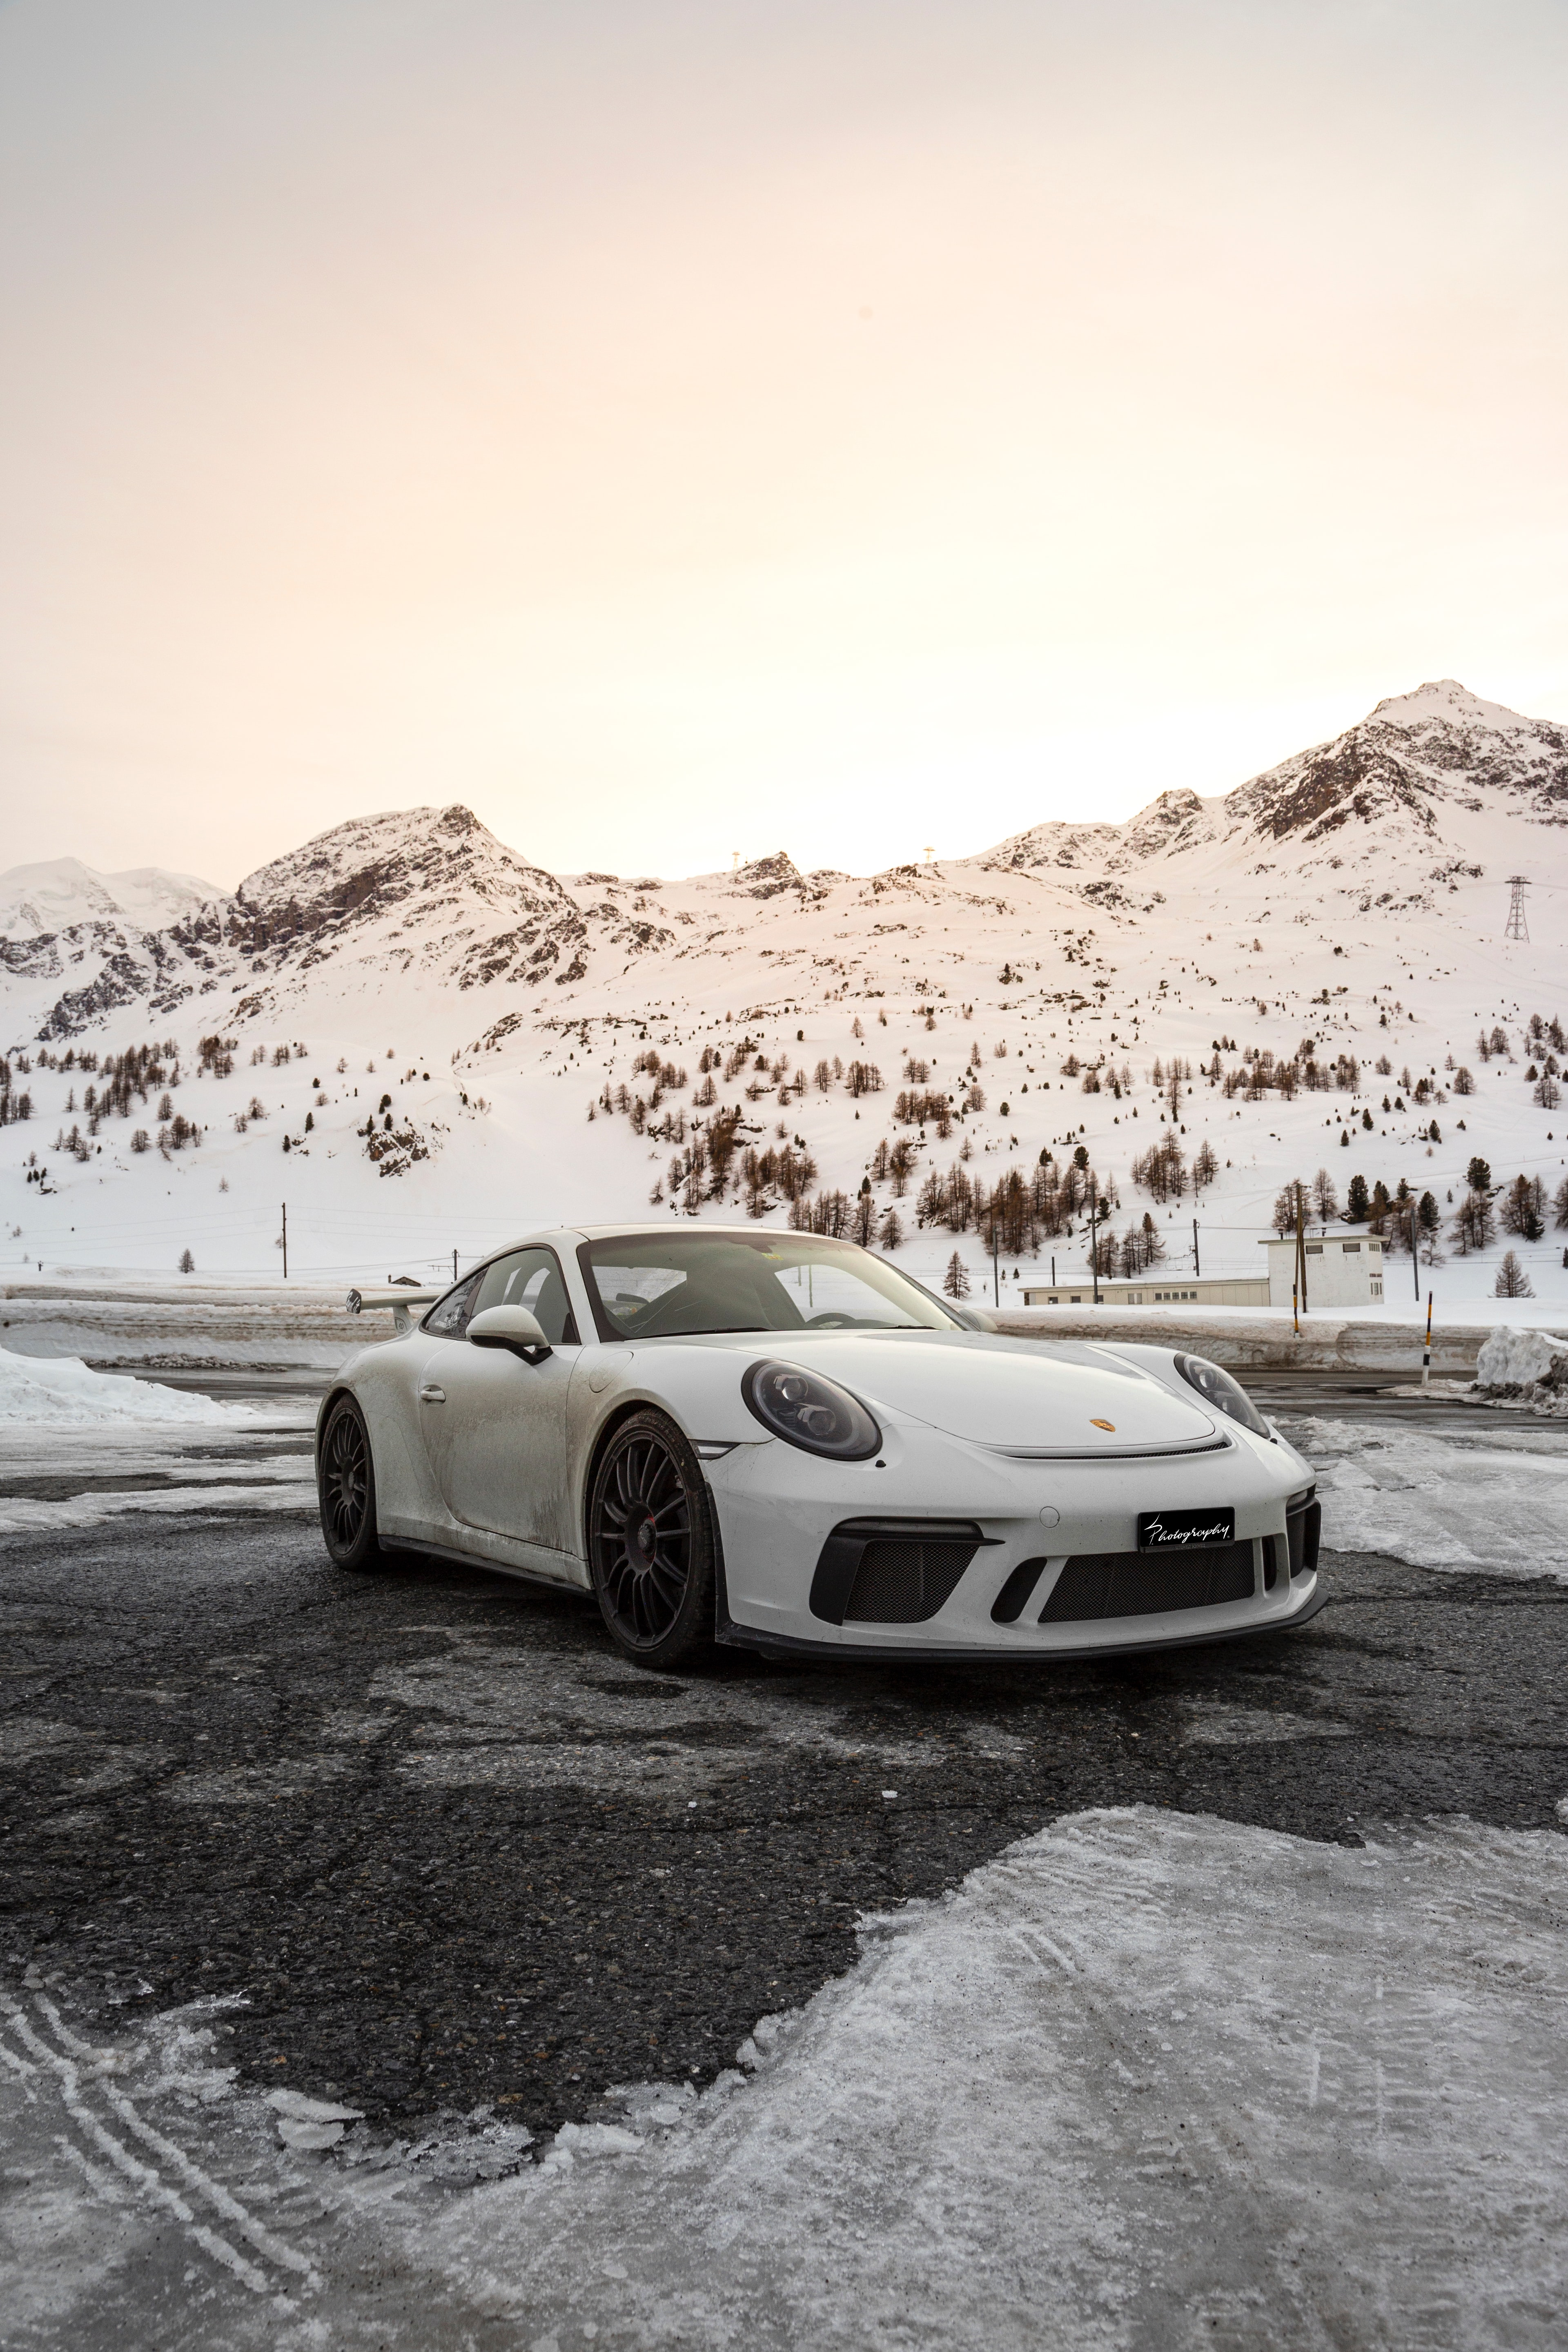 143022 download wallpaper Porsche, Sports, Mountains, Snow, Cars, Car, Sports Car screensavers and pictures for free